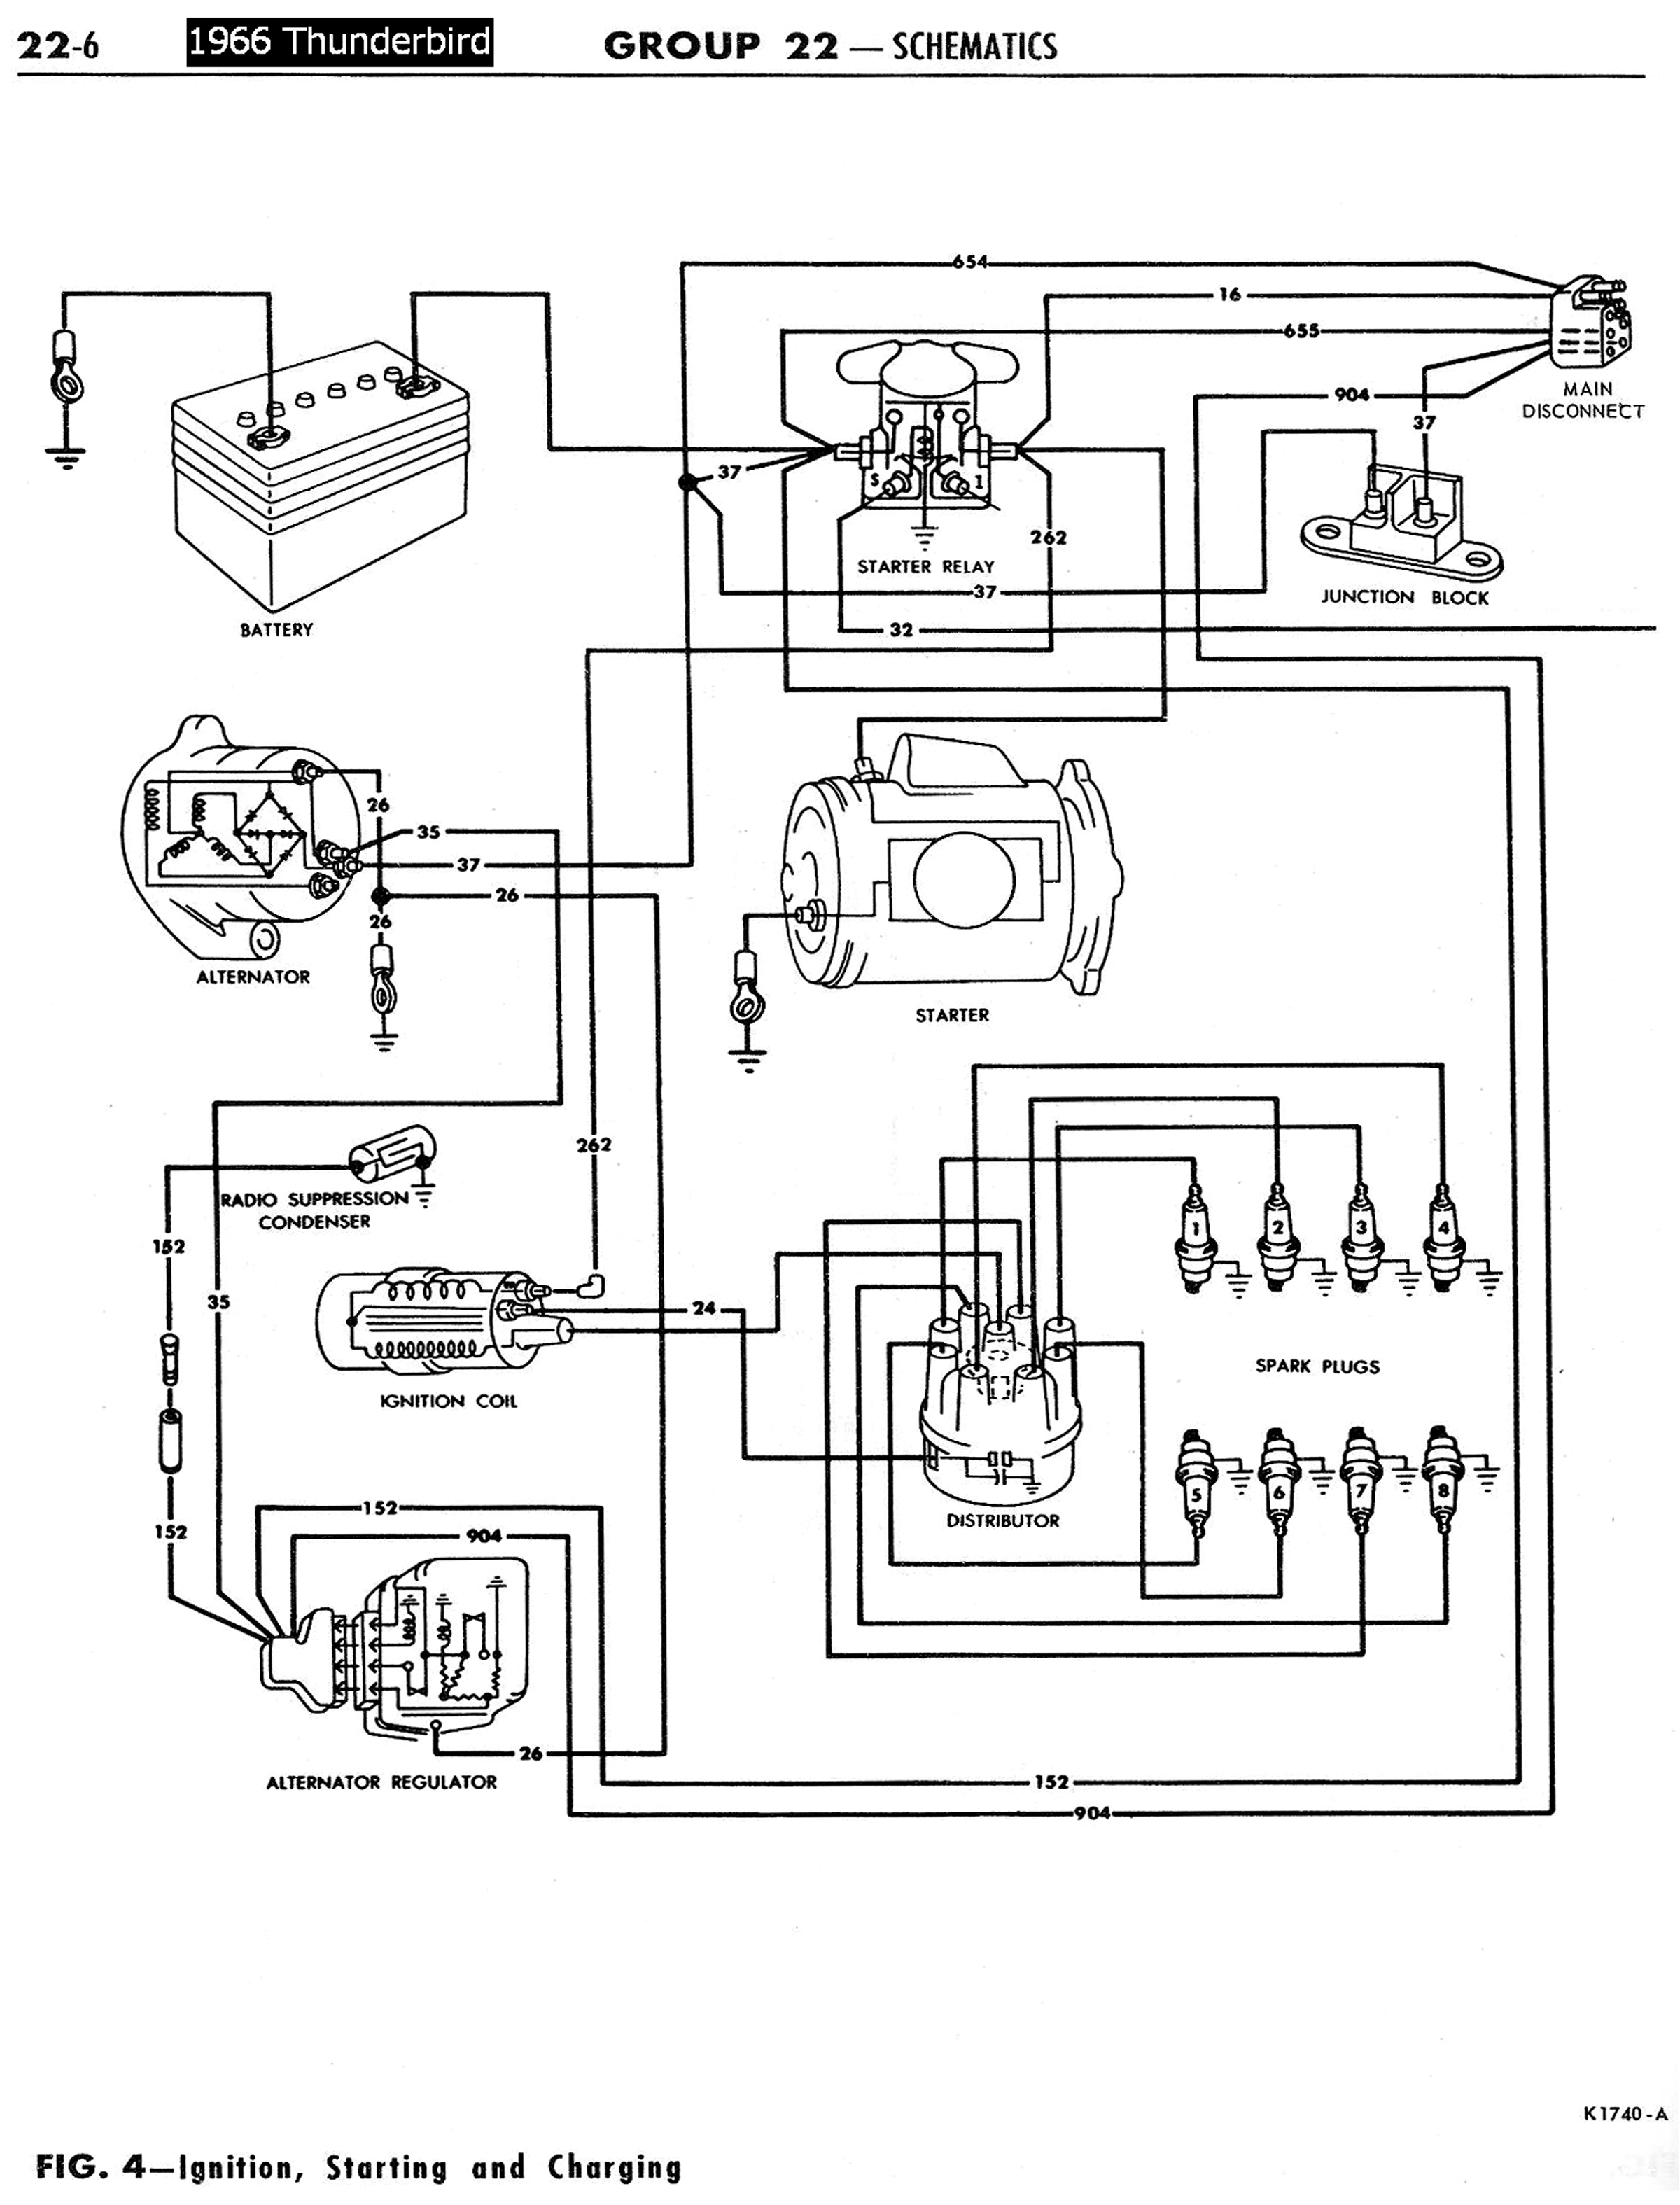 1955 Ford Thunderbird Wiring Diagram on 1958 Ford Fairlane Wiring Diagram